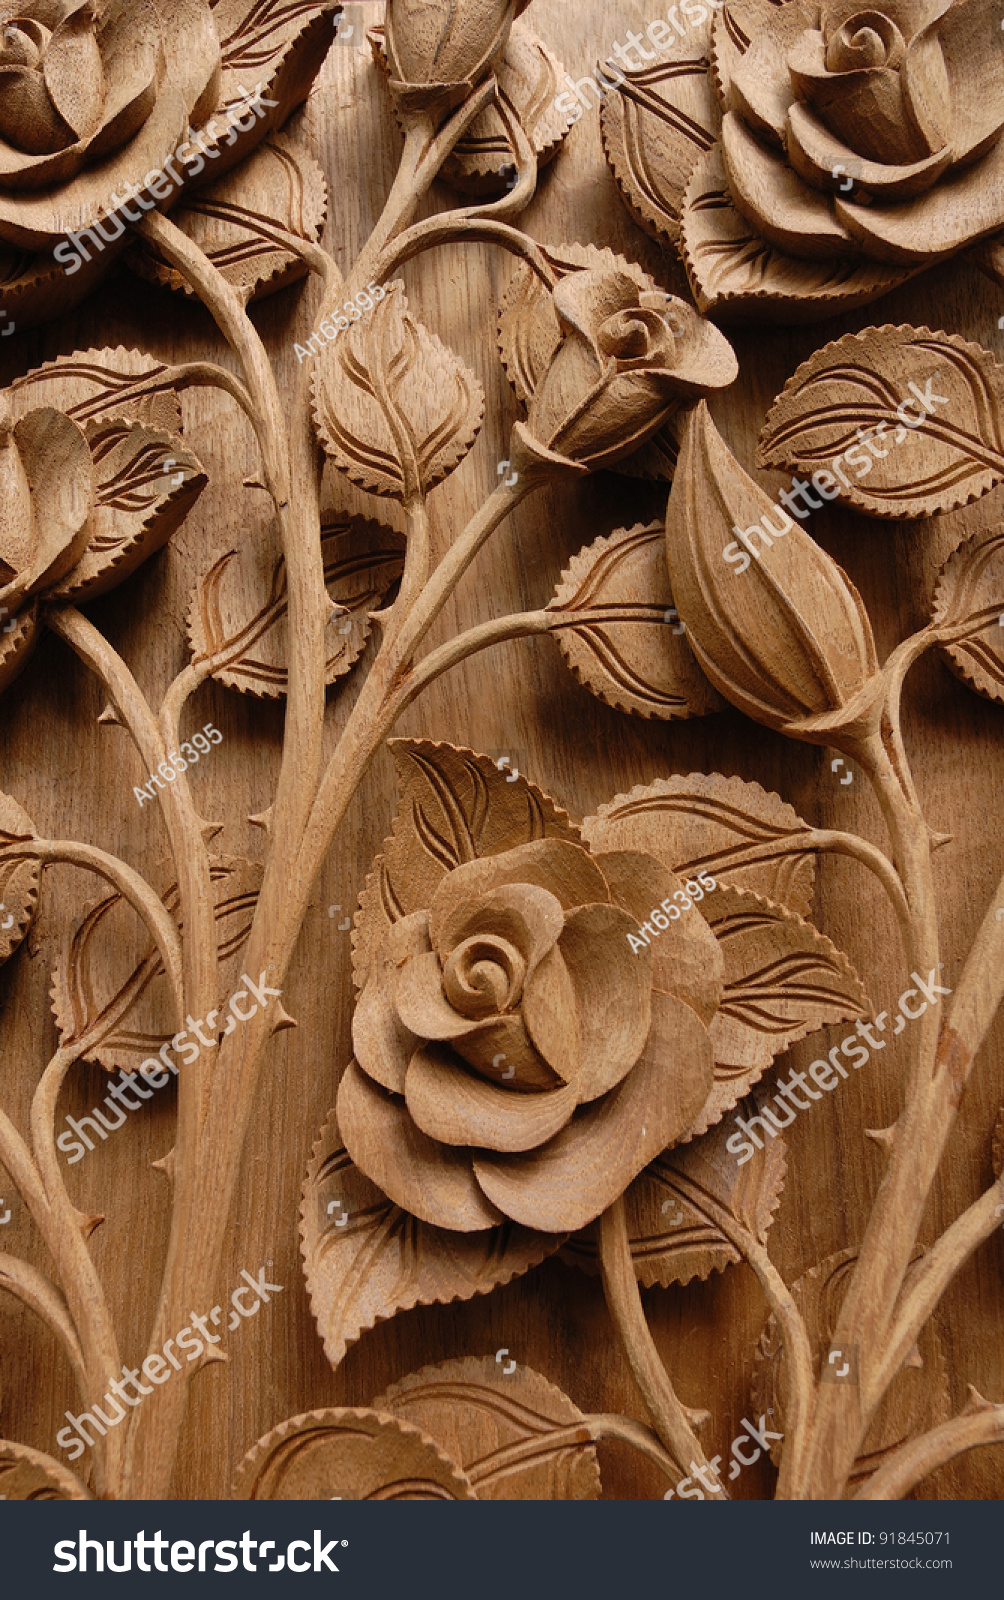 Rose flower thai style teak wood stock photo 91845071 for Wood carving doors hd images